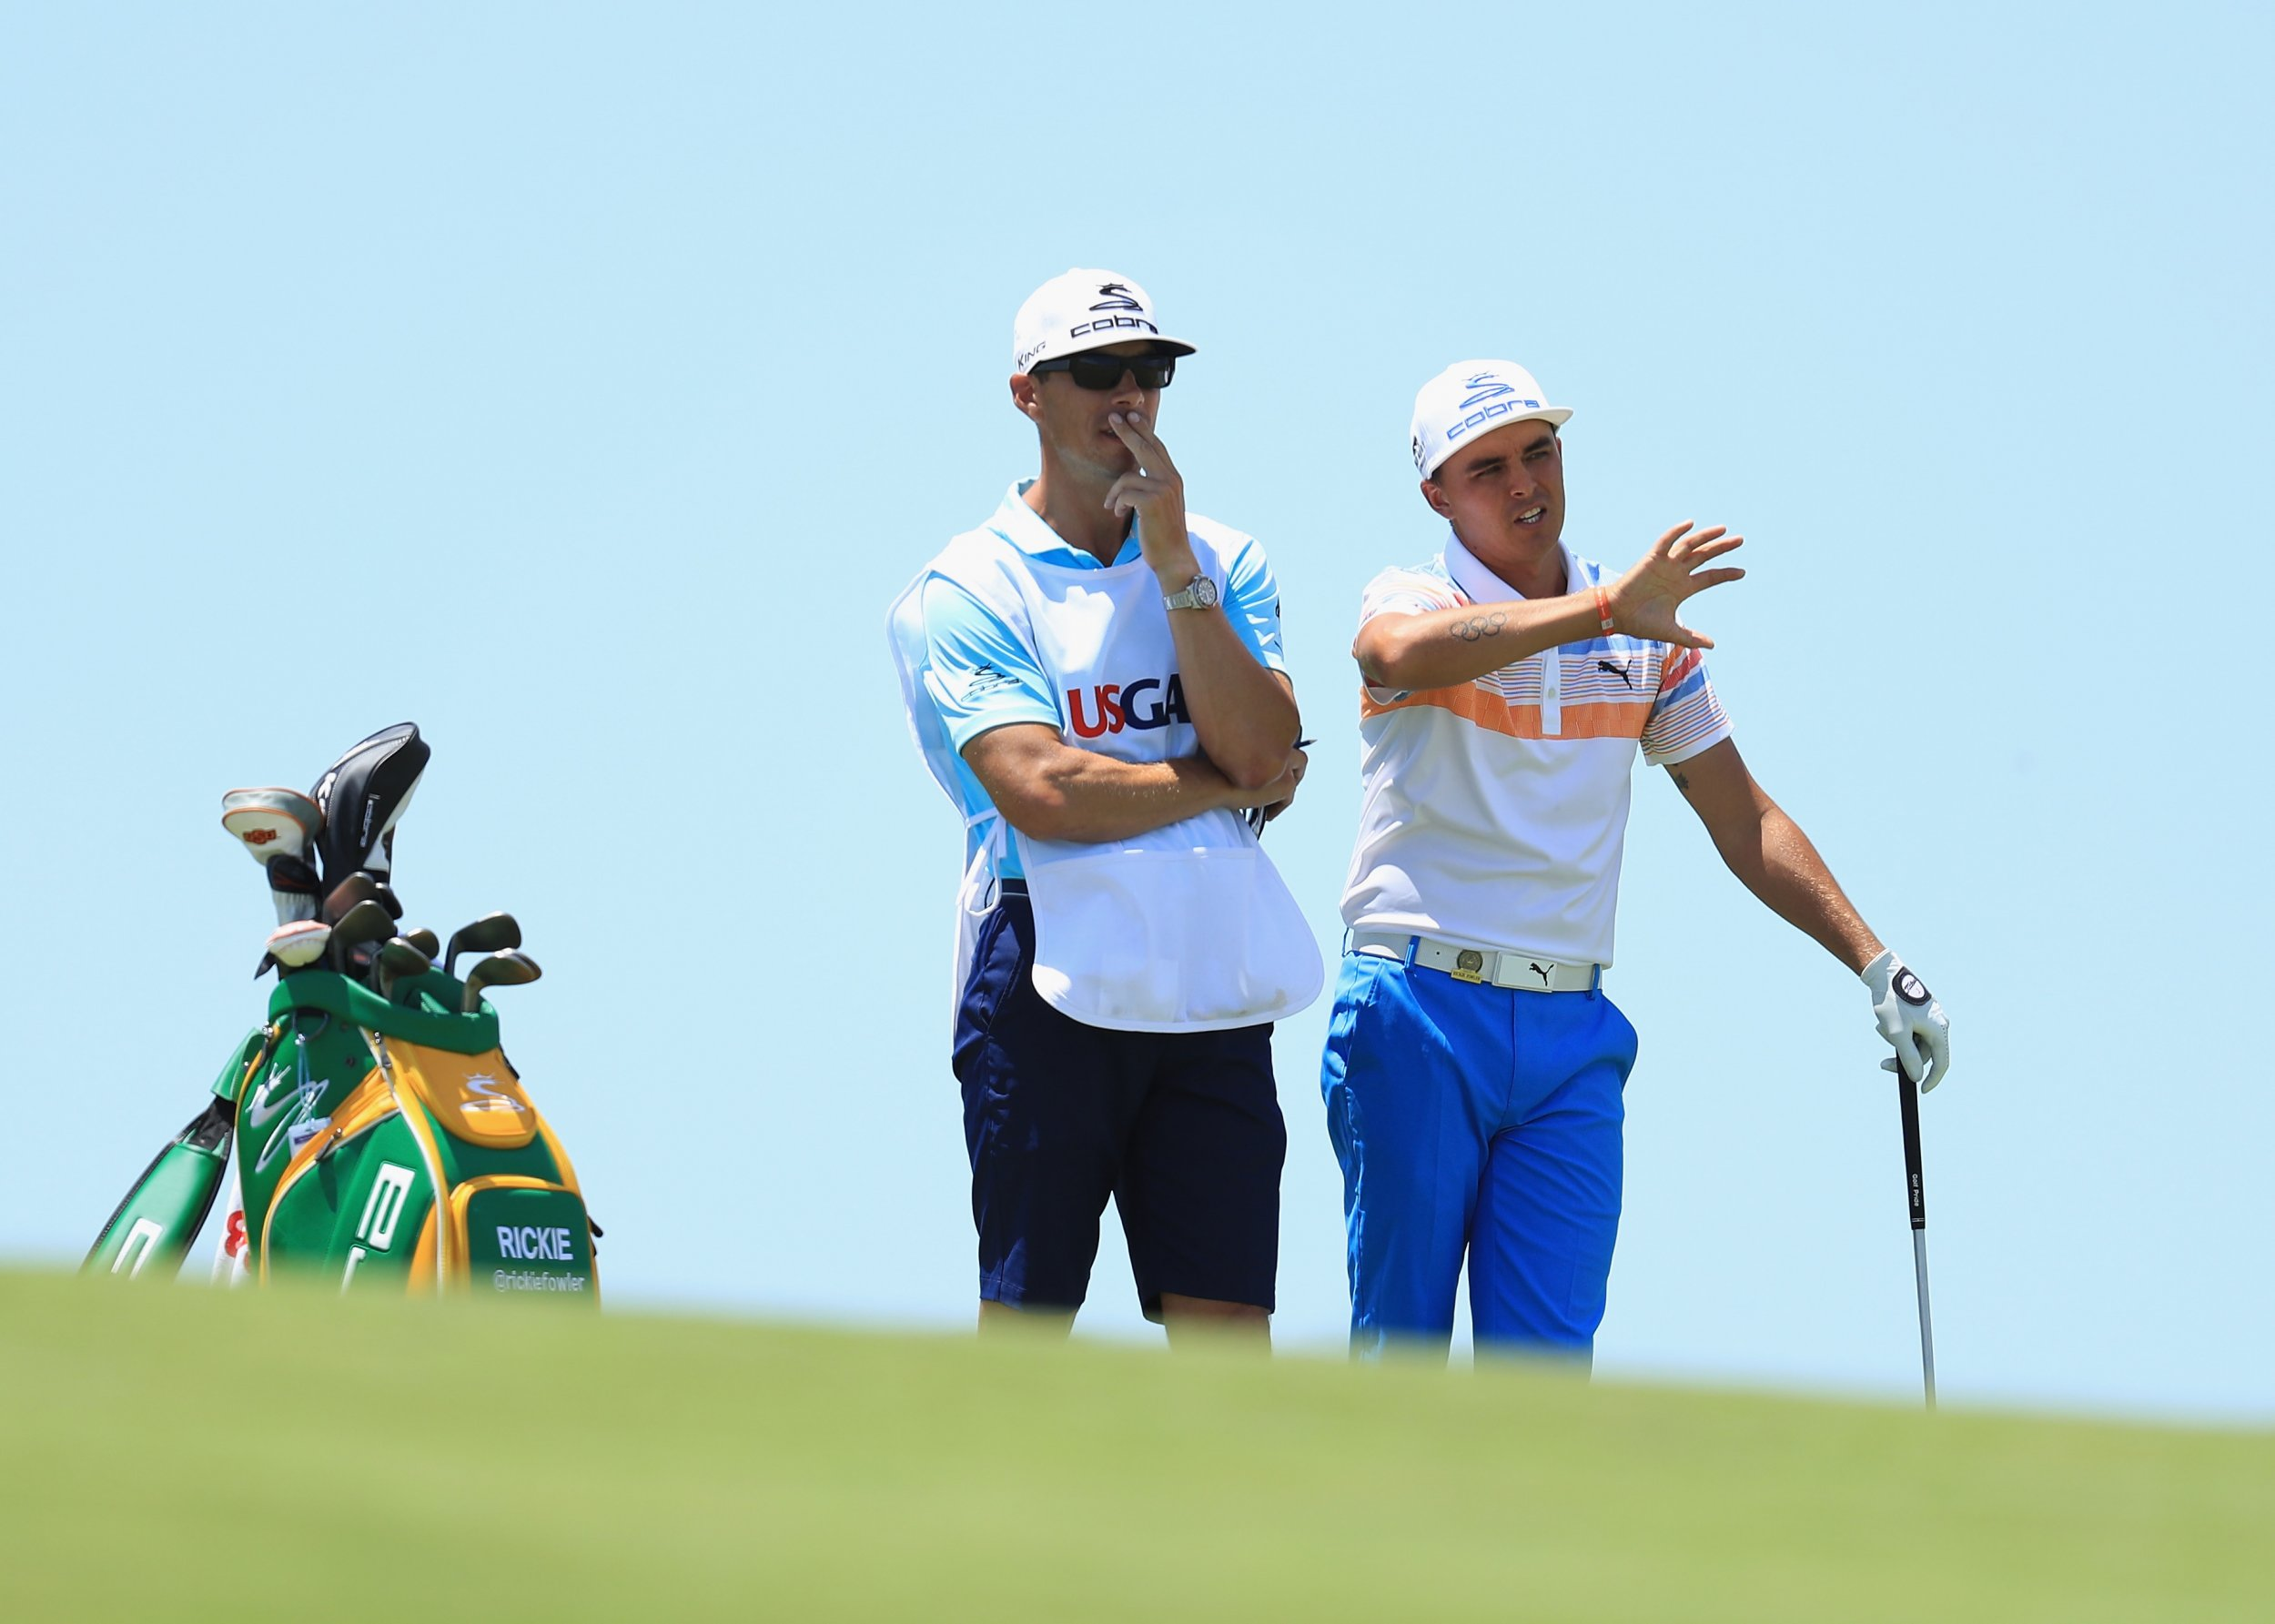 Rickie Fowler of the United States, right, and caddie Joe Skovron in Hartford, Wisconsin, June 15.